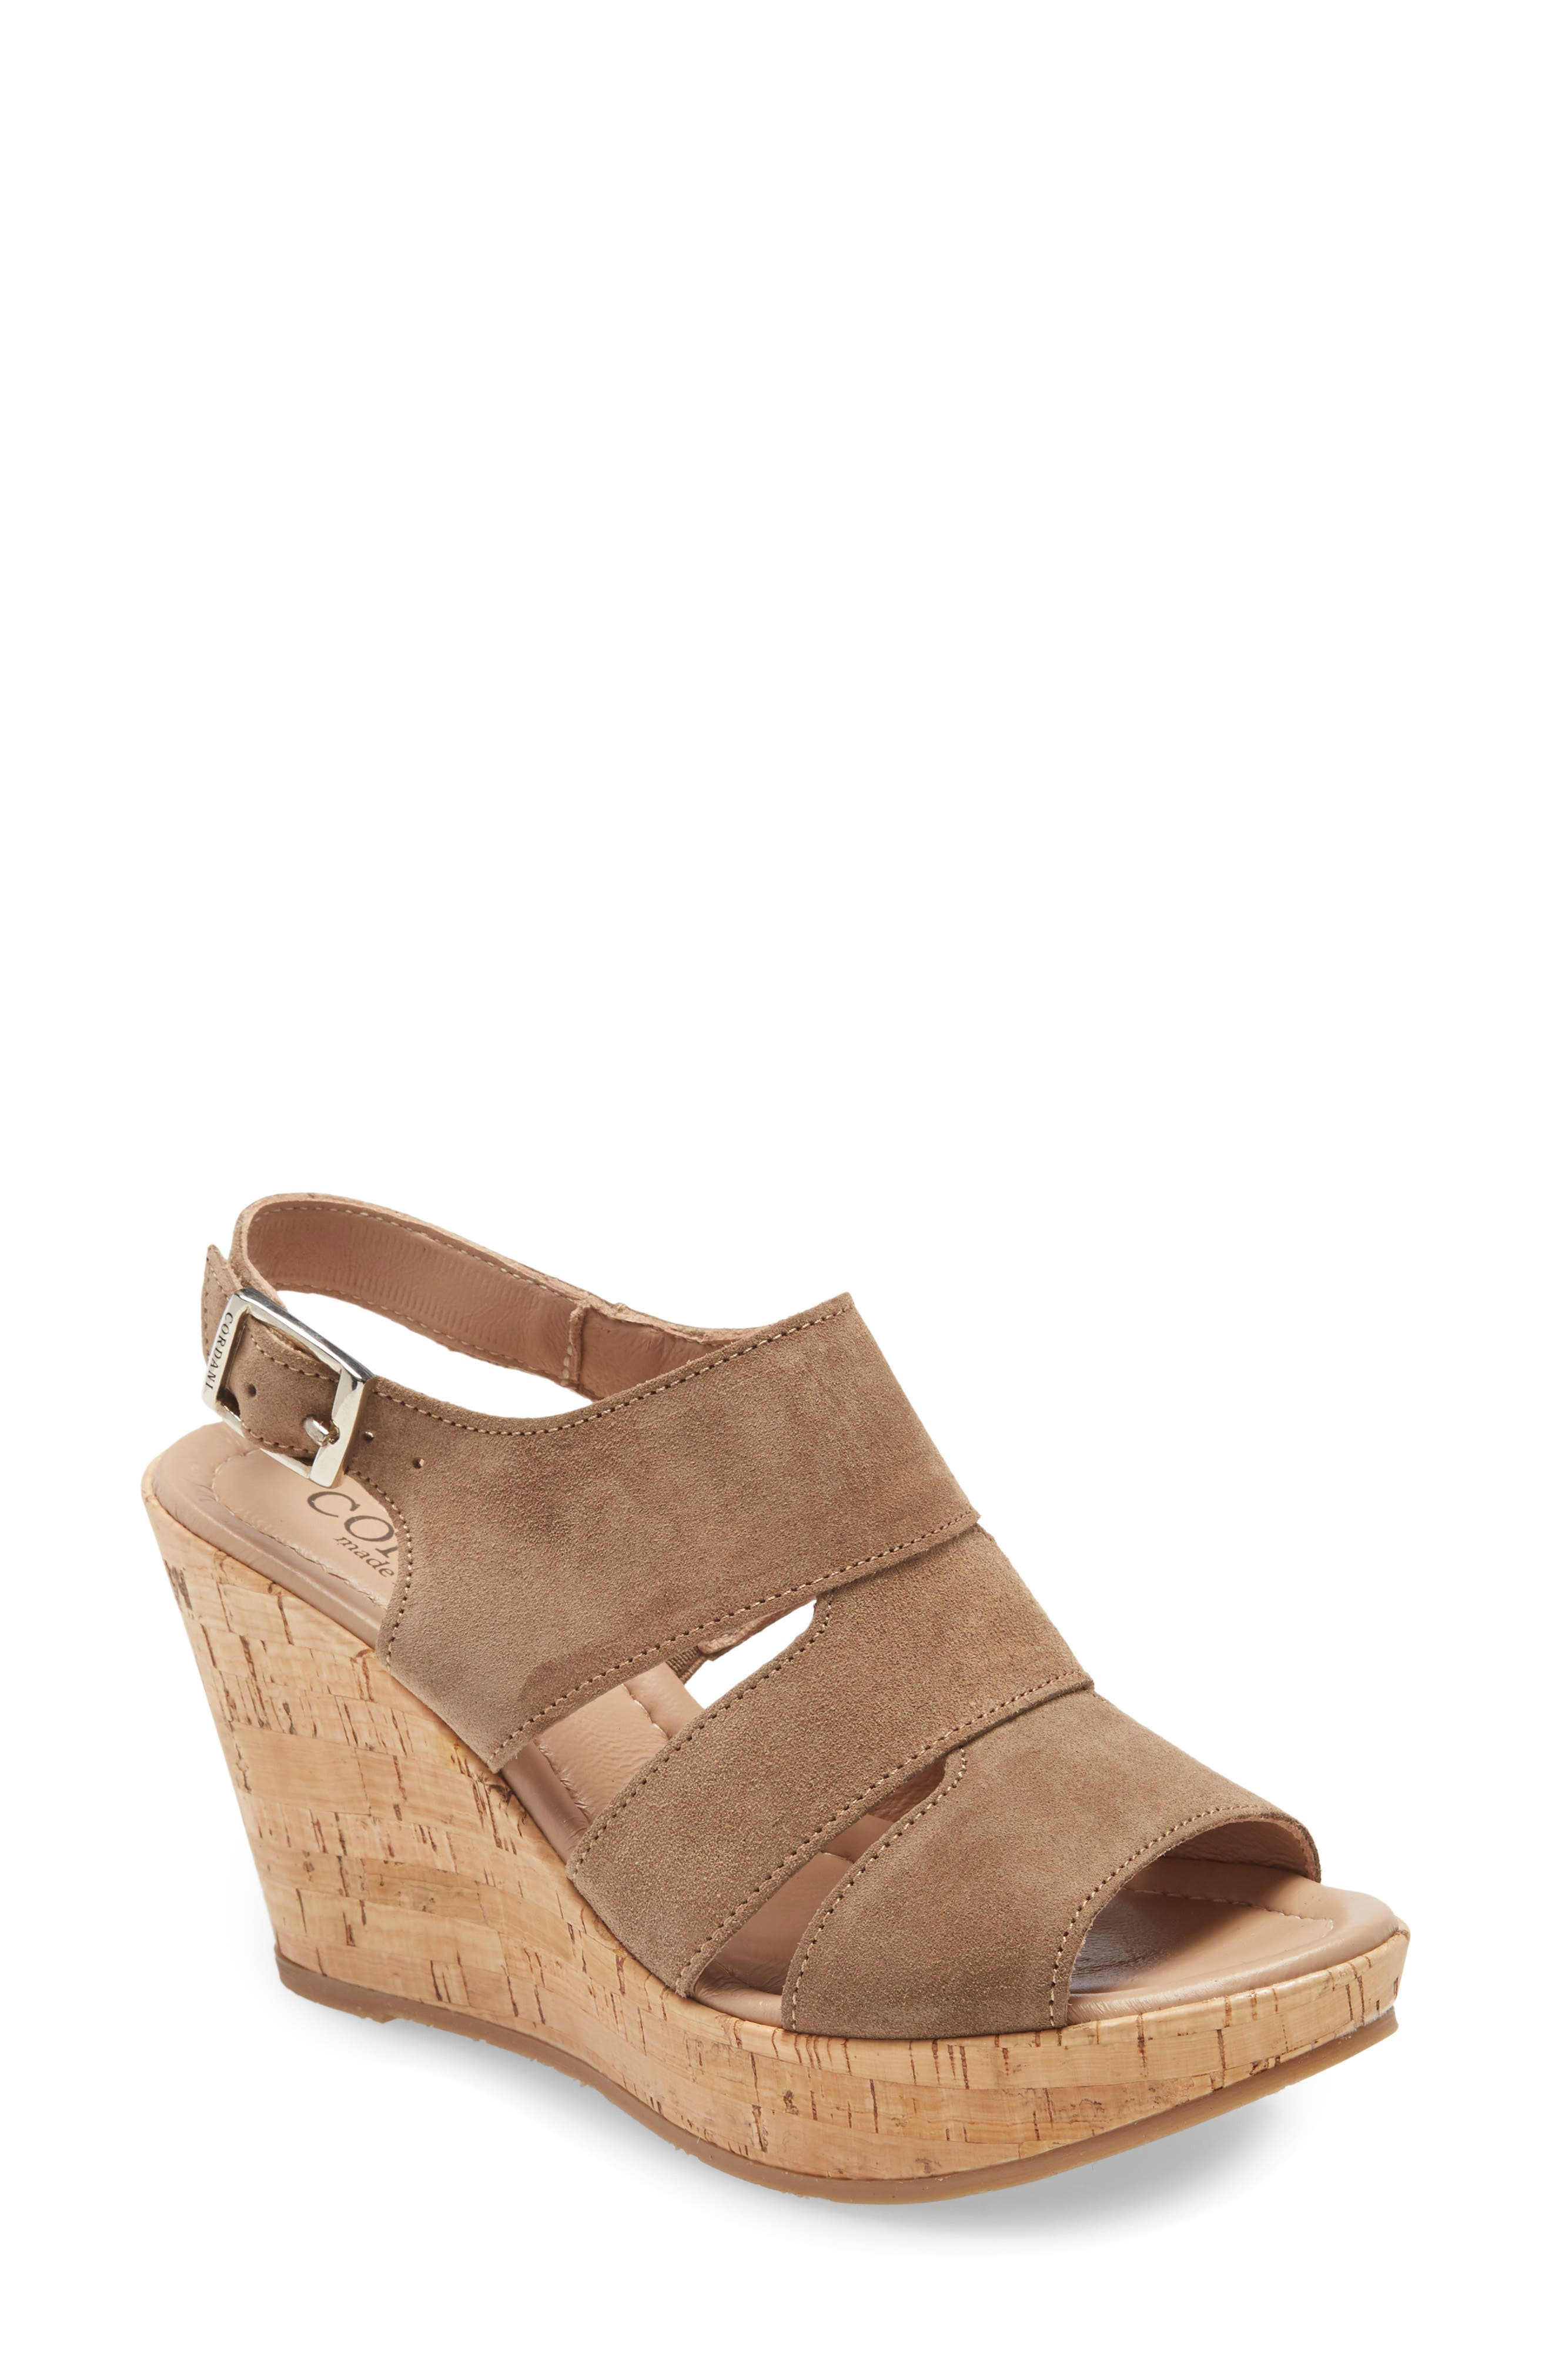 A cork platform wedge brings earthy texture and height to a strappy sandal fitted with a supremely cushioned footbed. Style Name: Cordani Rosie Platform Wedge Sandal (Women). Style Number: 5997332. Available in stores.